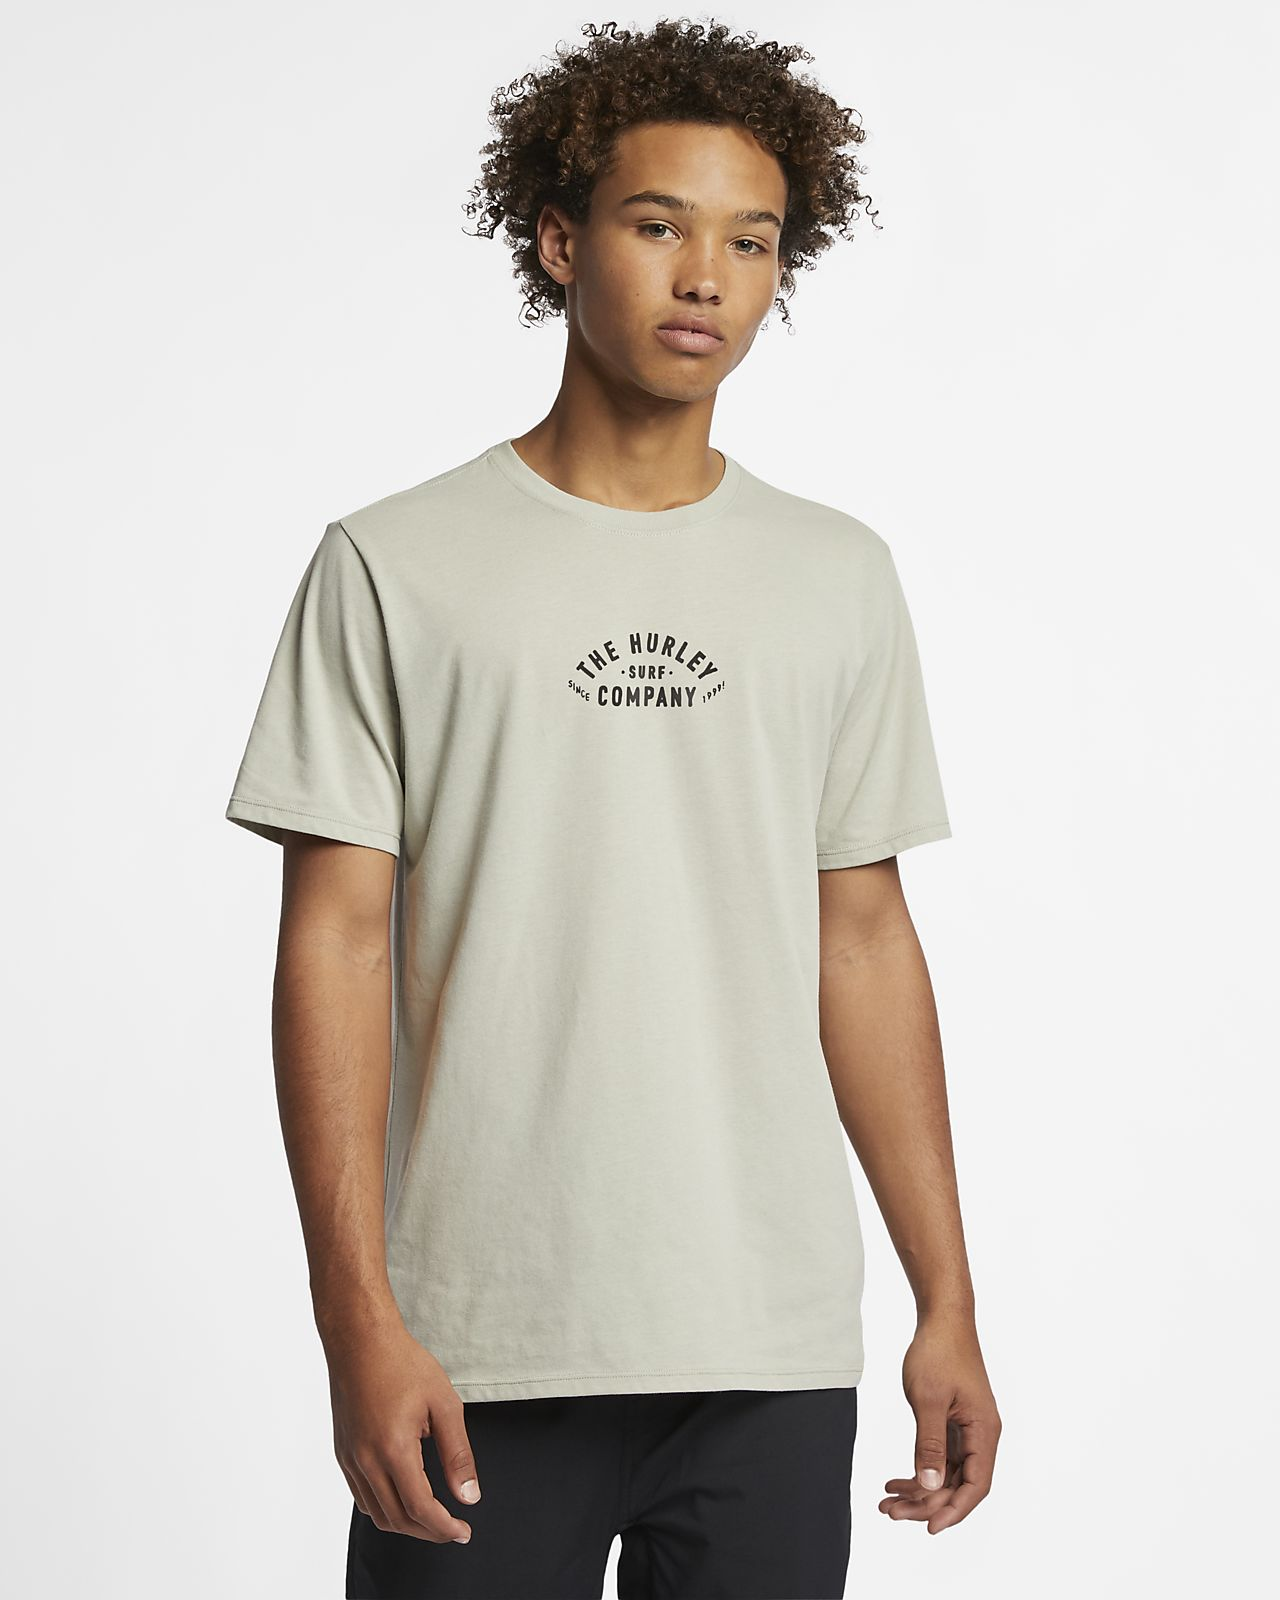 T-shirt Hurley Dri-FIT 3rd Base - Uomo